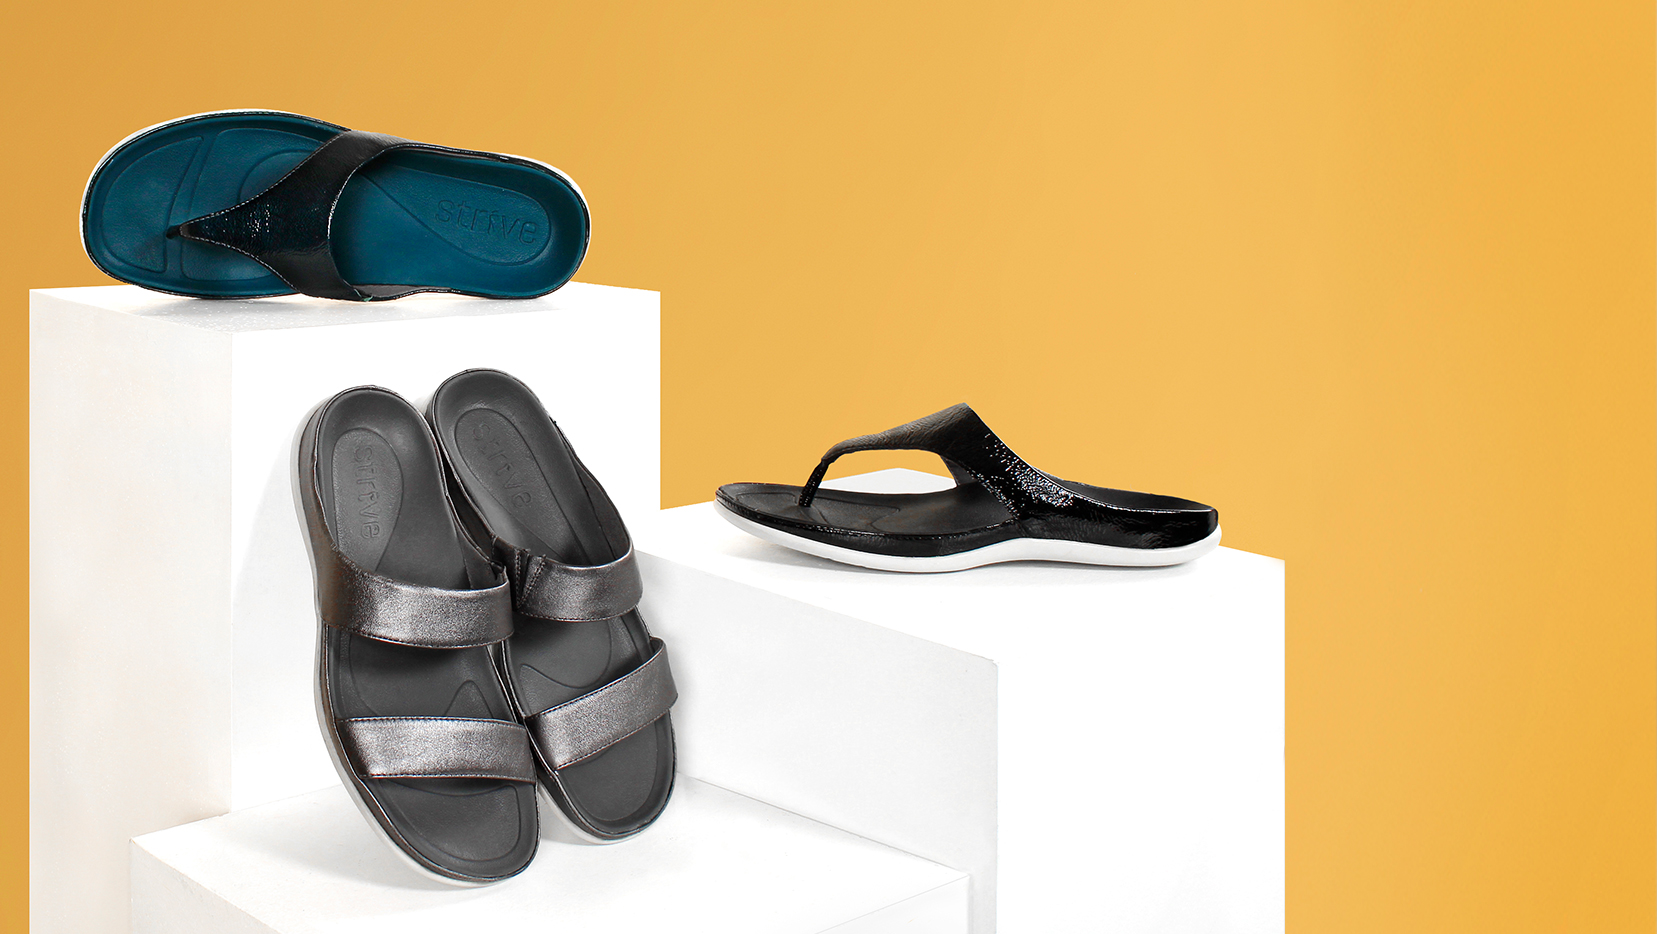 Shop all beach and everyday sandals